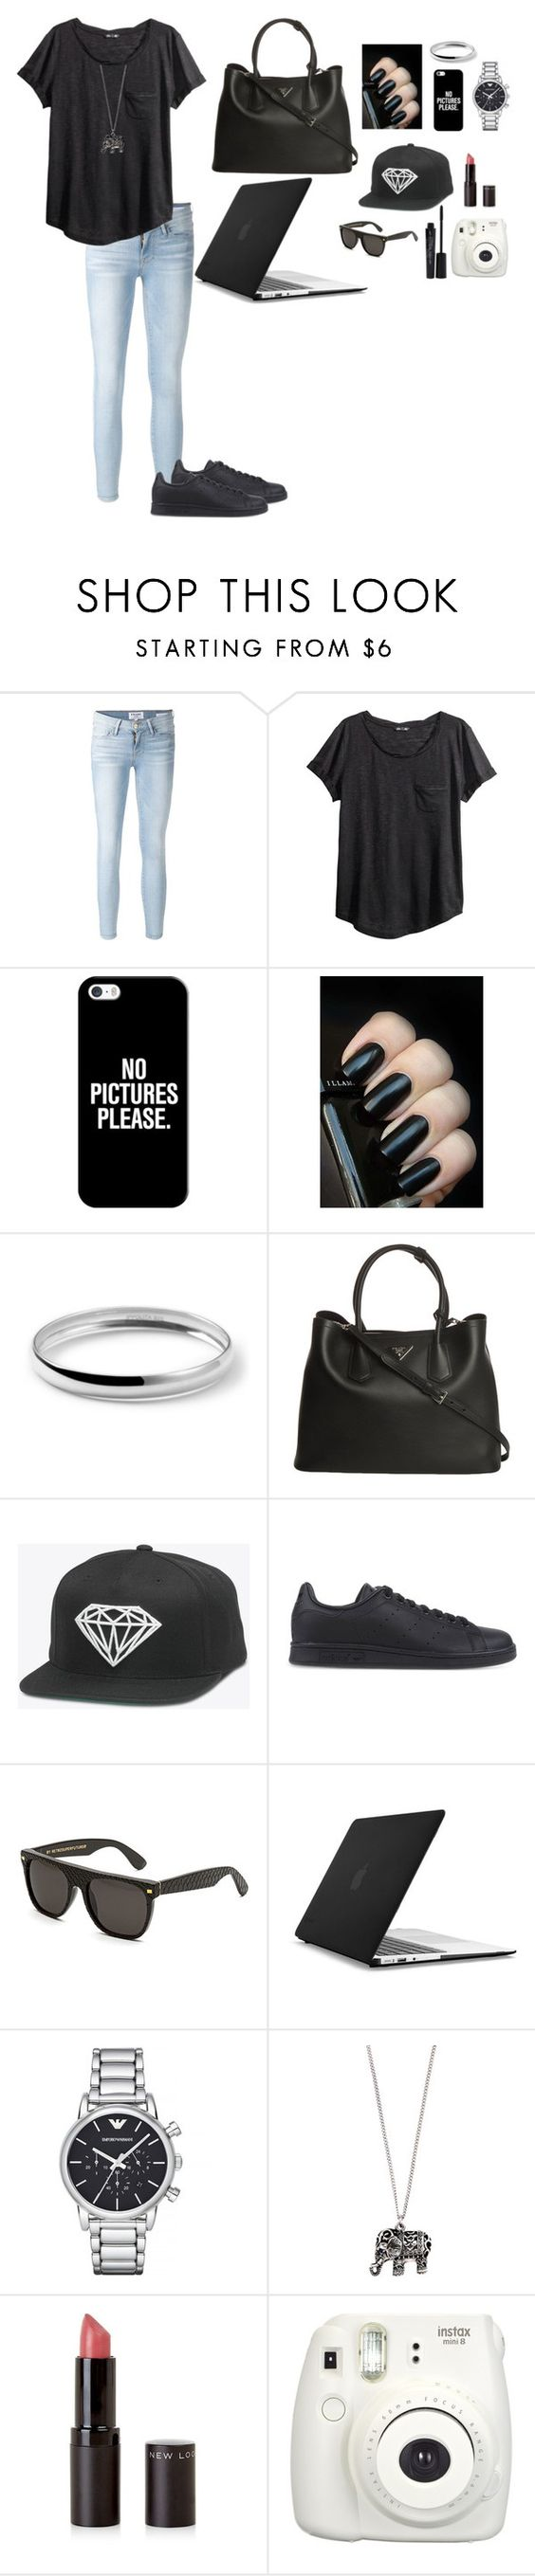 """Black All the Way"" by camposv571 ❤ liked on Polyvore featuring Frame Denim, H&M, Casetify, Ippolita, Prada, adidas Originals, RetroSuperFuture, Speck, Emporio Armani and Accessorize"